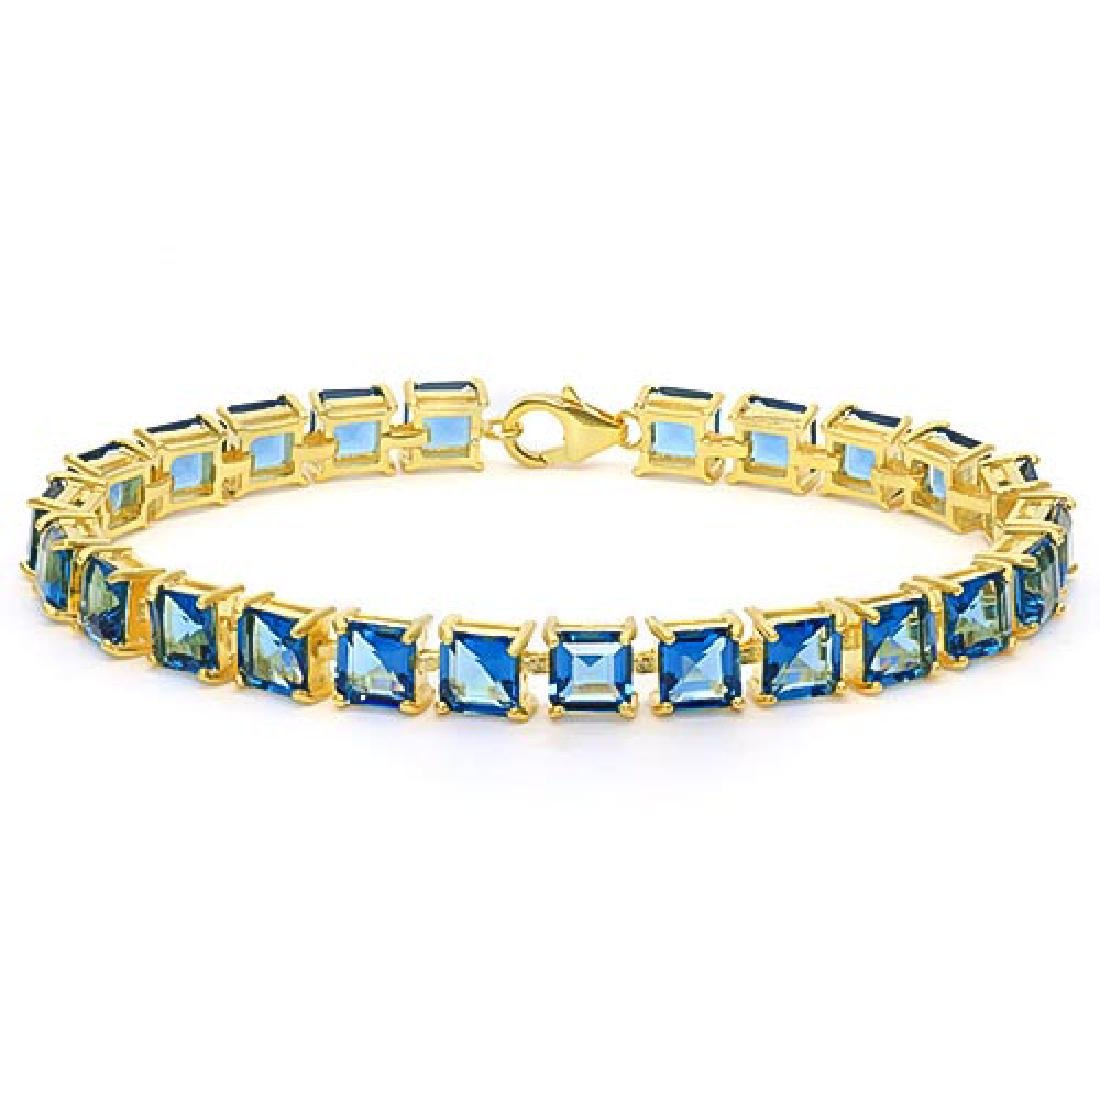 24.1 CTWW NATURAL BLUE TOPAZ 14K GOLD TENNIS BRACELET